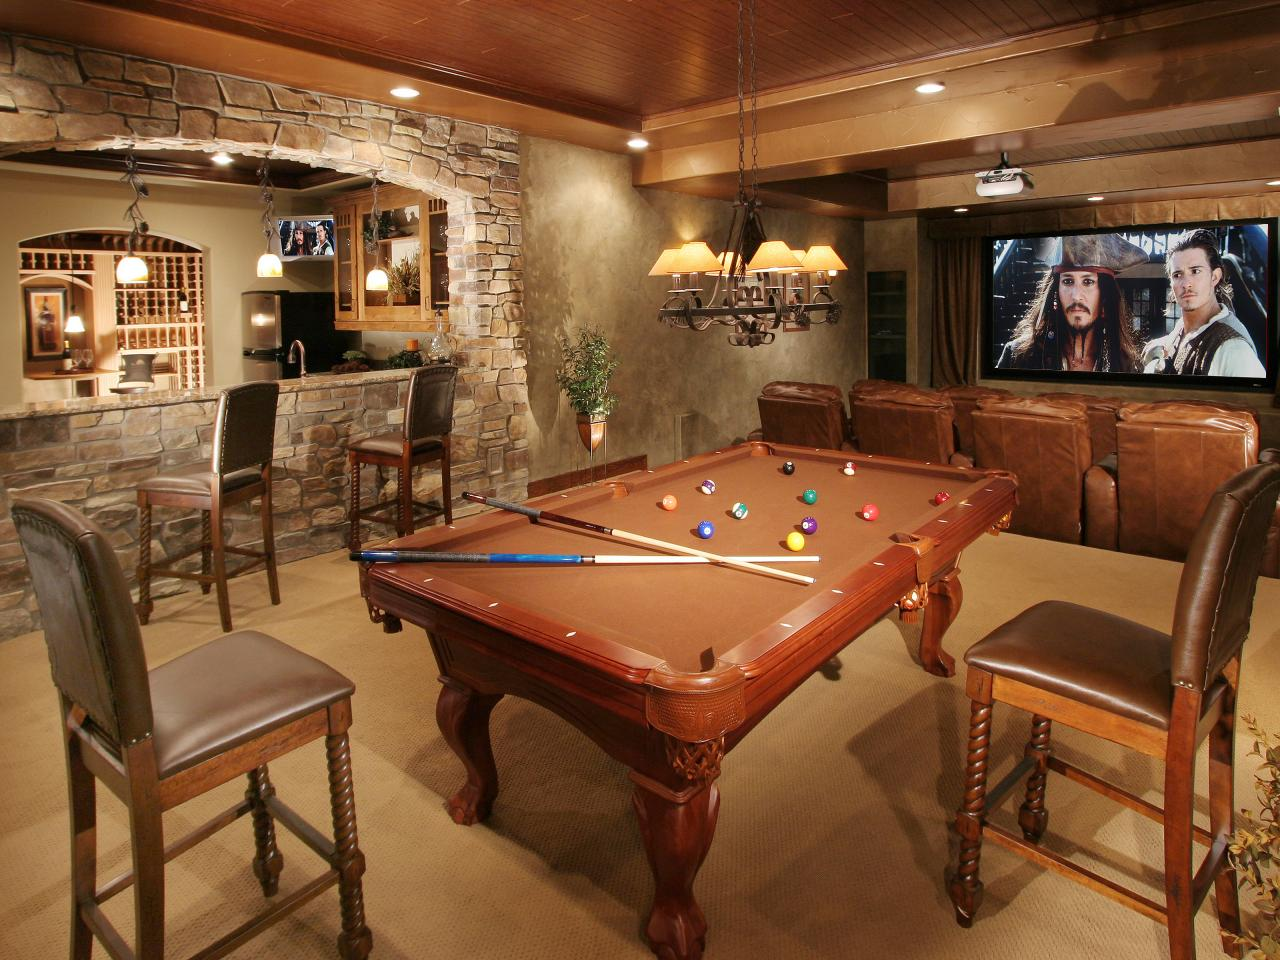 Finished Basement Design Ideas 20 clever and cool basement wall ideas Lounge Worthy Basements See All Photos